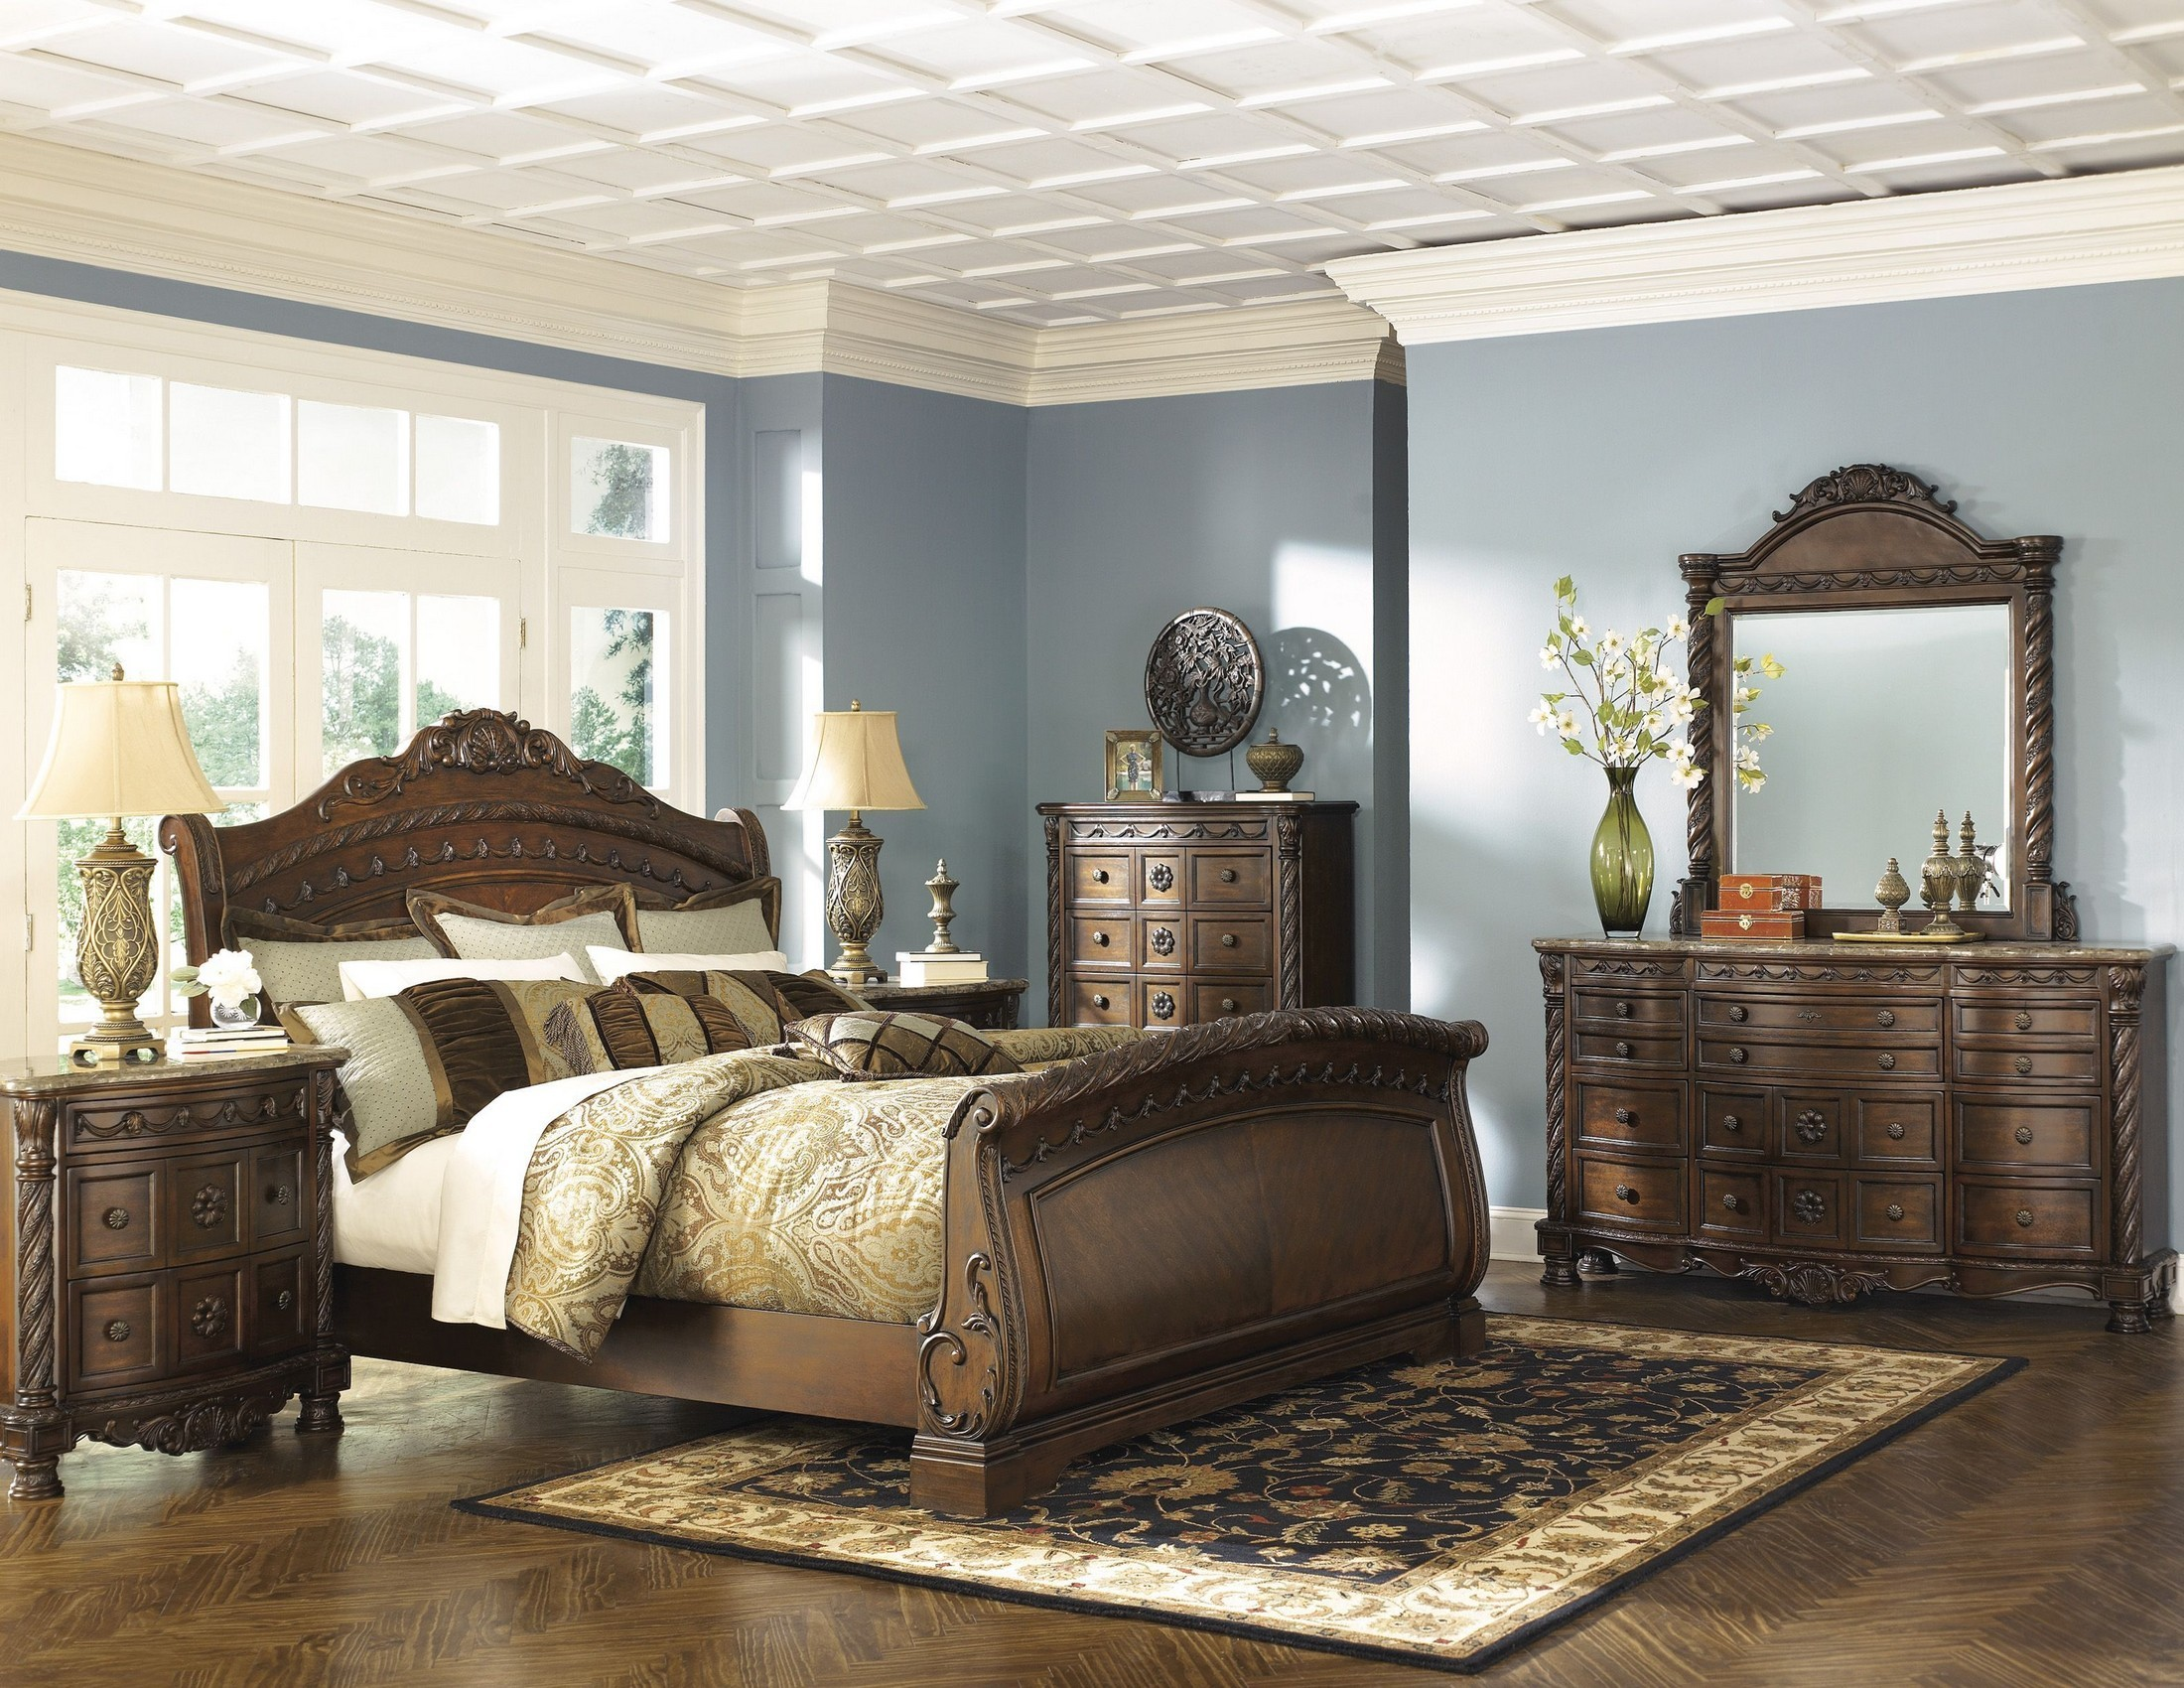 Impressive Bedroom Set Furniture Gallery